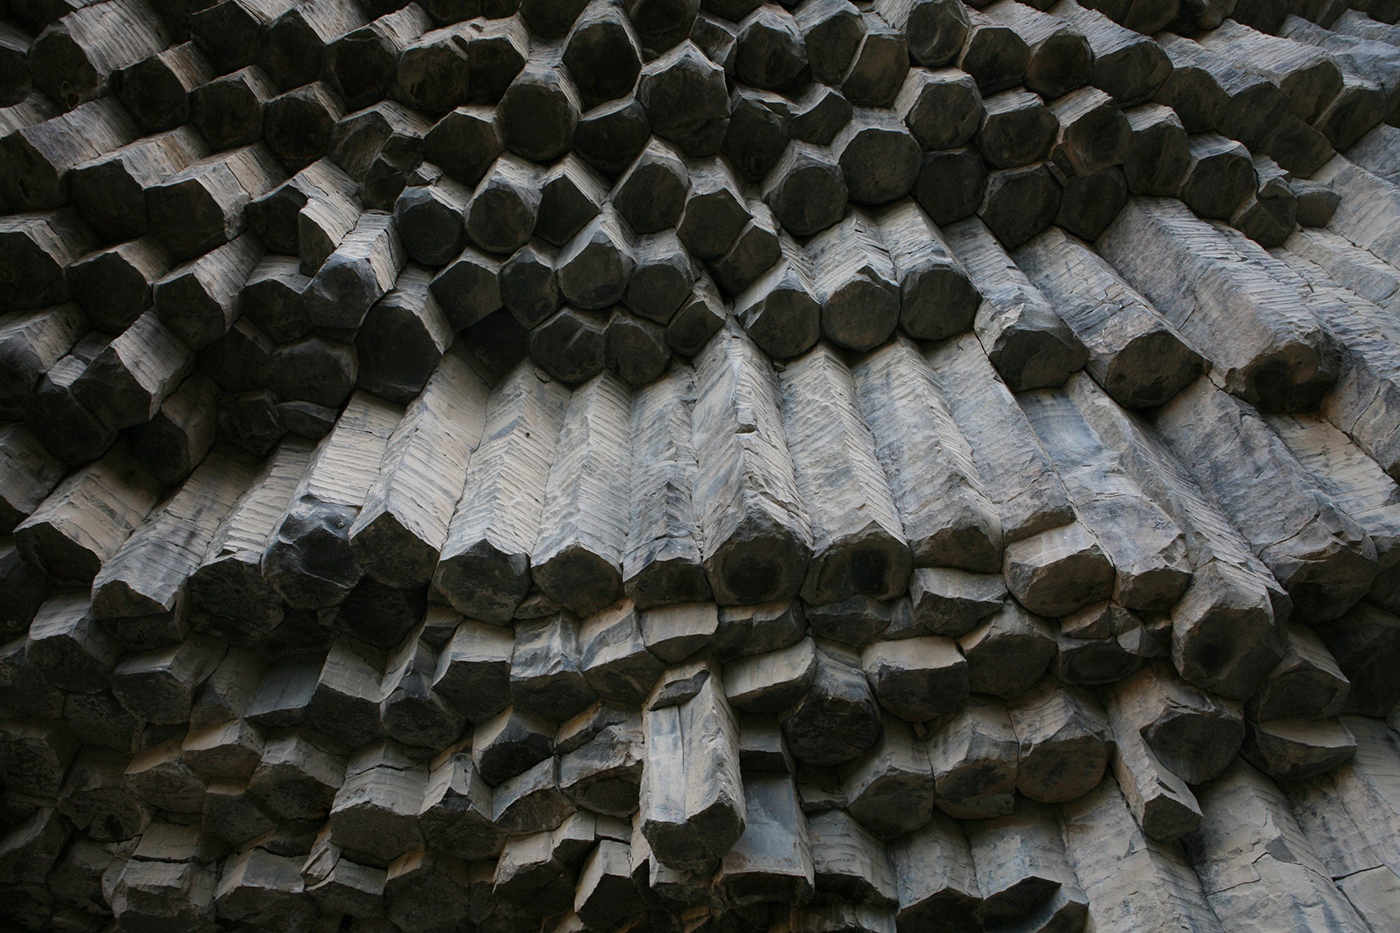 Symphony of the Stones carved by the Goght River at Garni Gorge in Armenia is an example of an emergent natural structure.